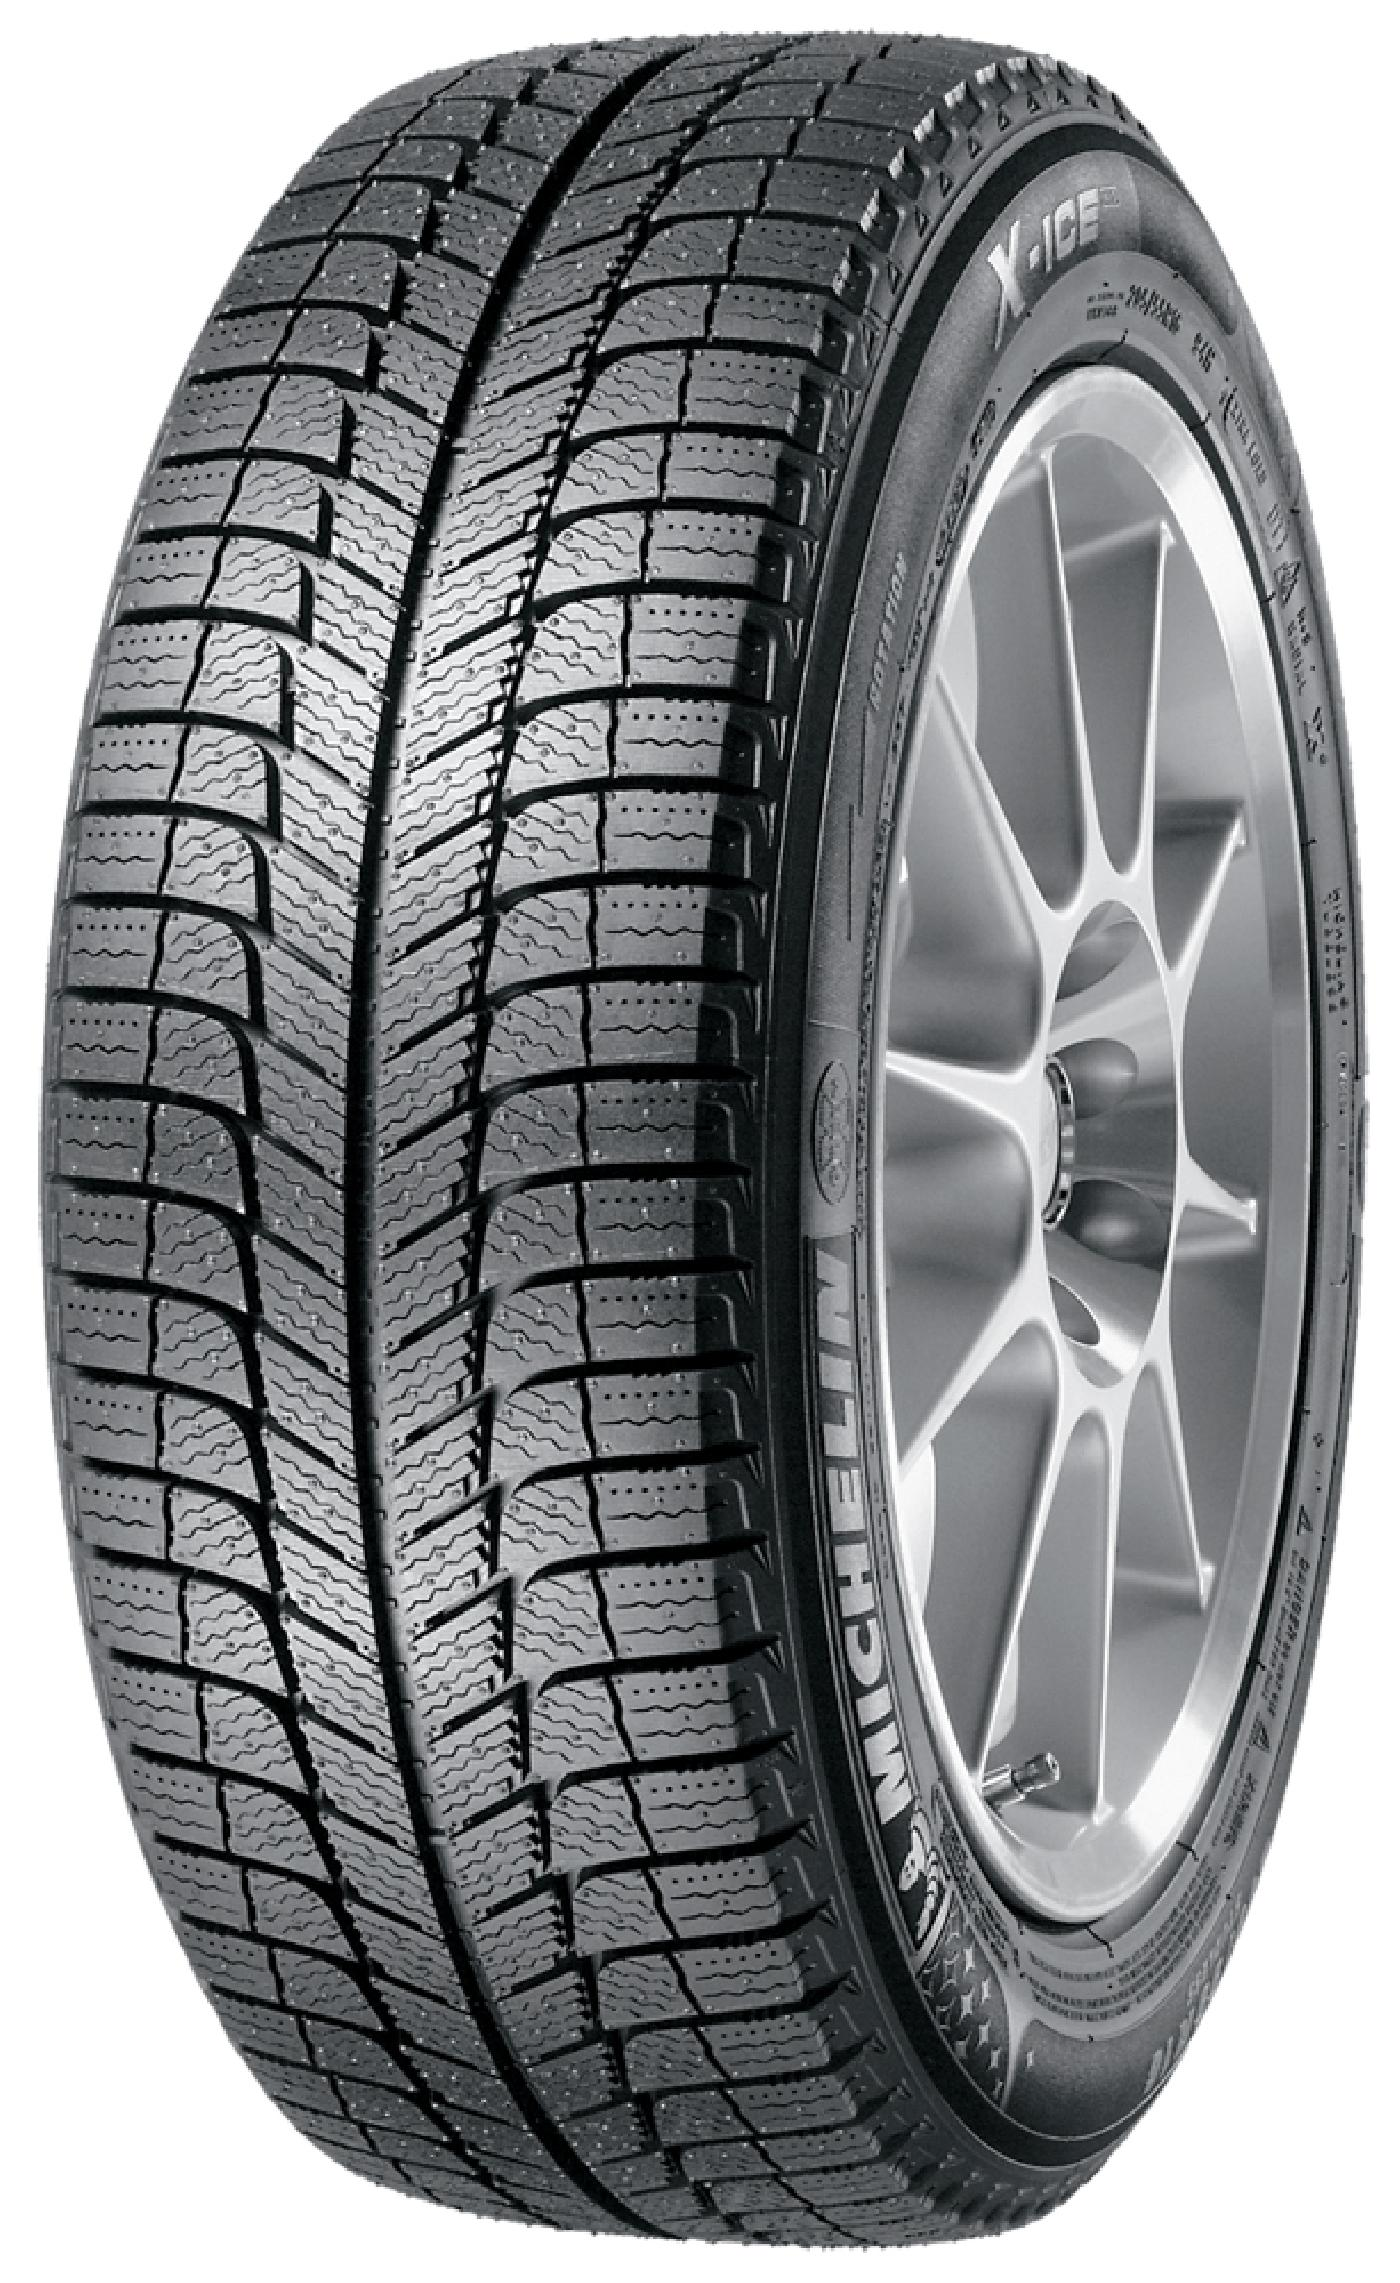 215/55 R16 Michelin X-Ice Xi3 97H